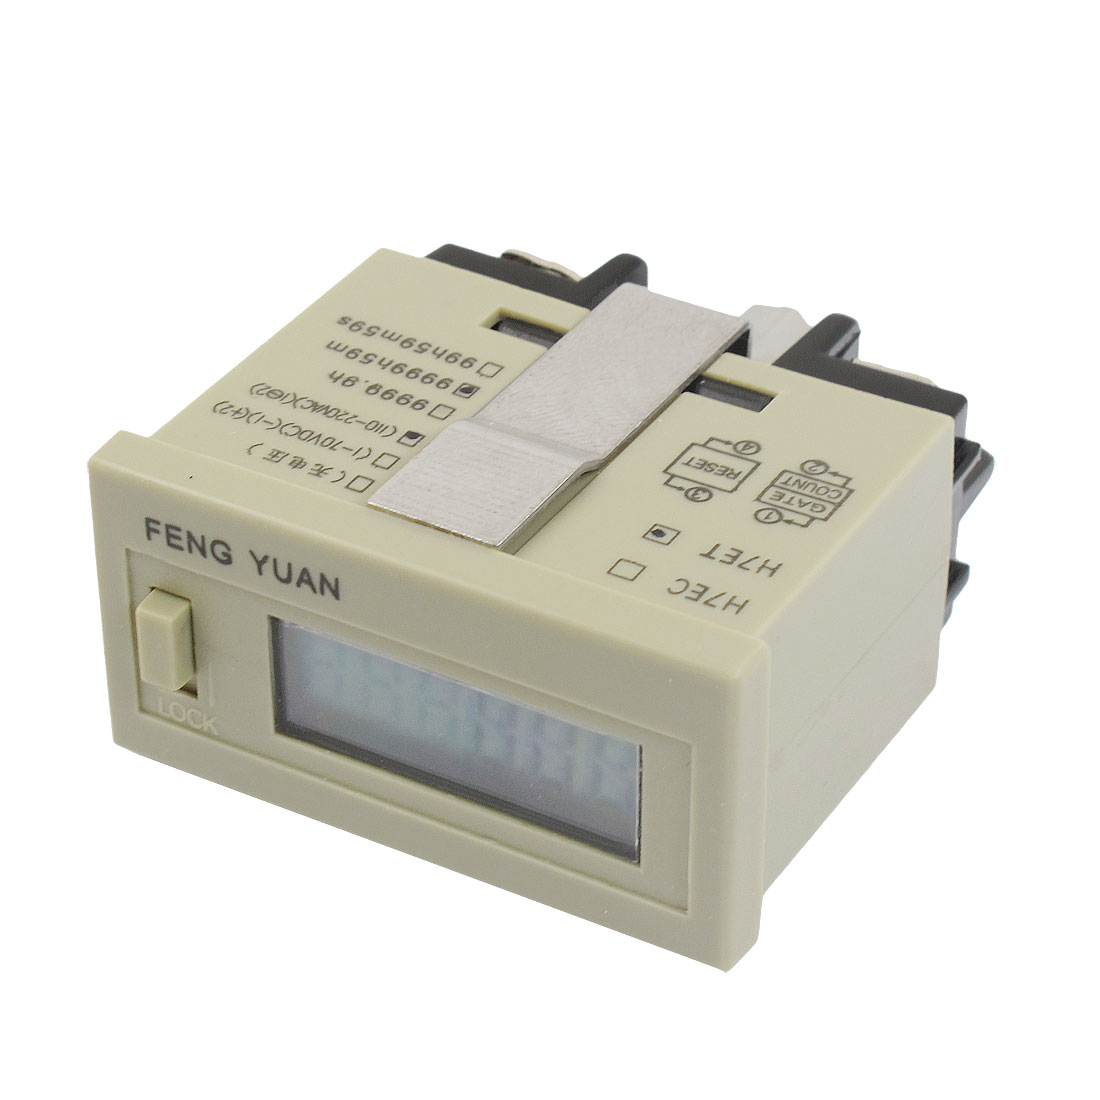 AC 110-220V Voltage 0 - 9999h59m Counting Range Resettable Time Timer Counter